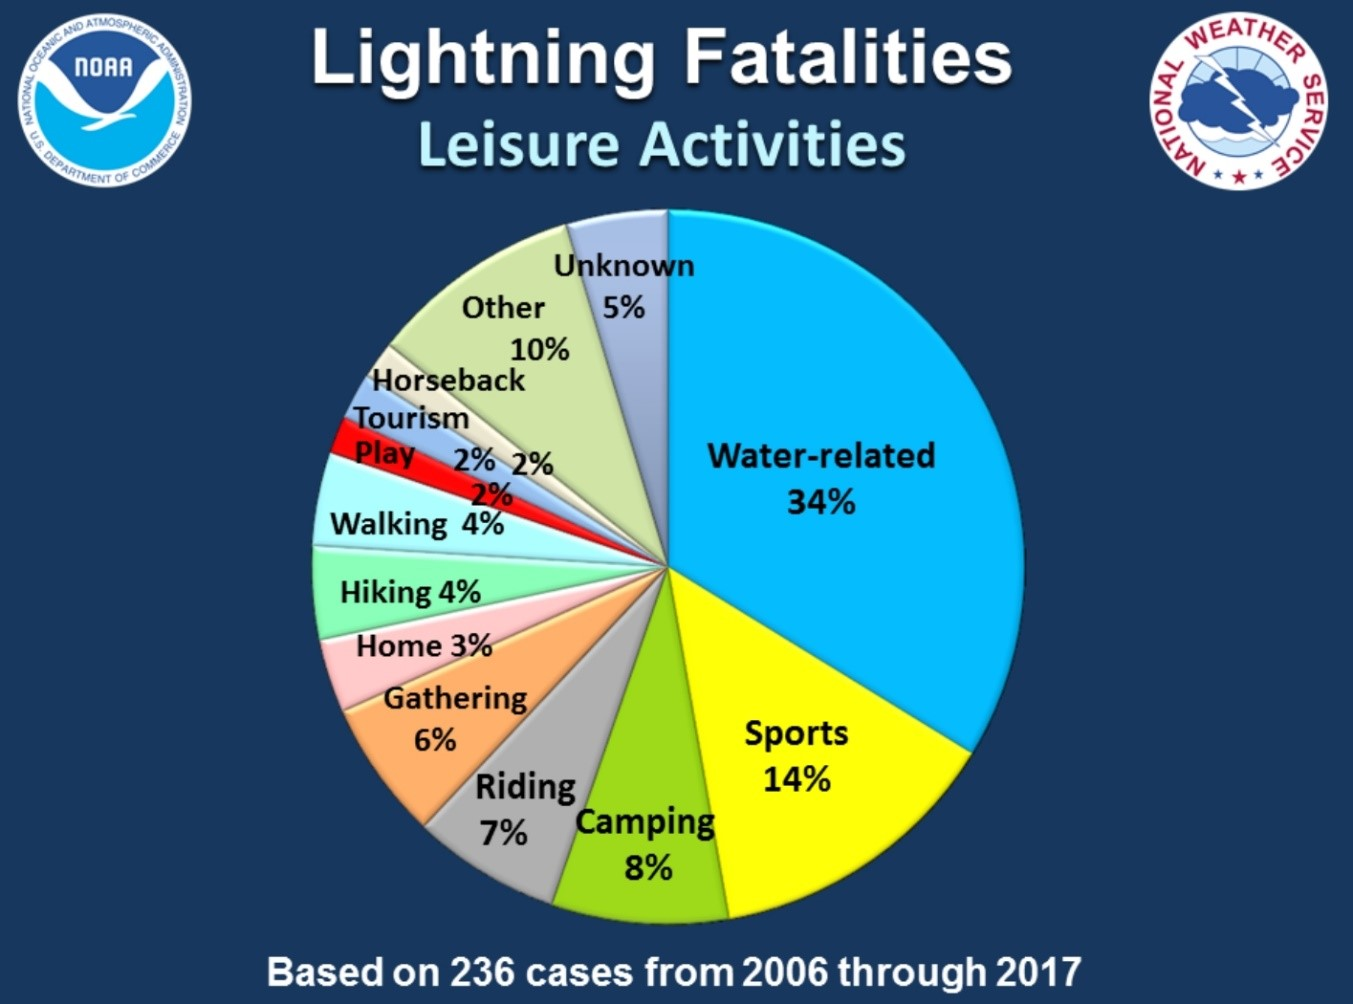 Pie chart of lightning facilities stats